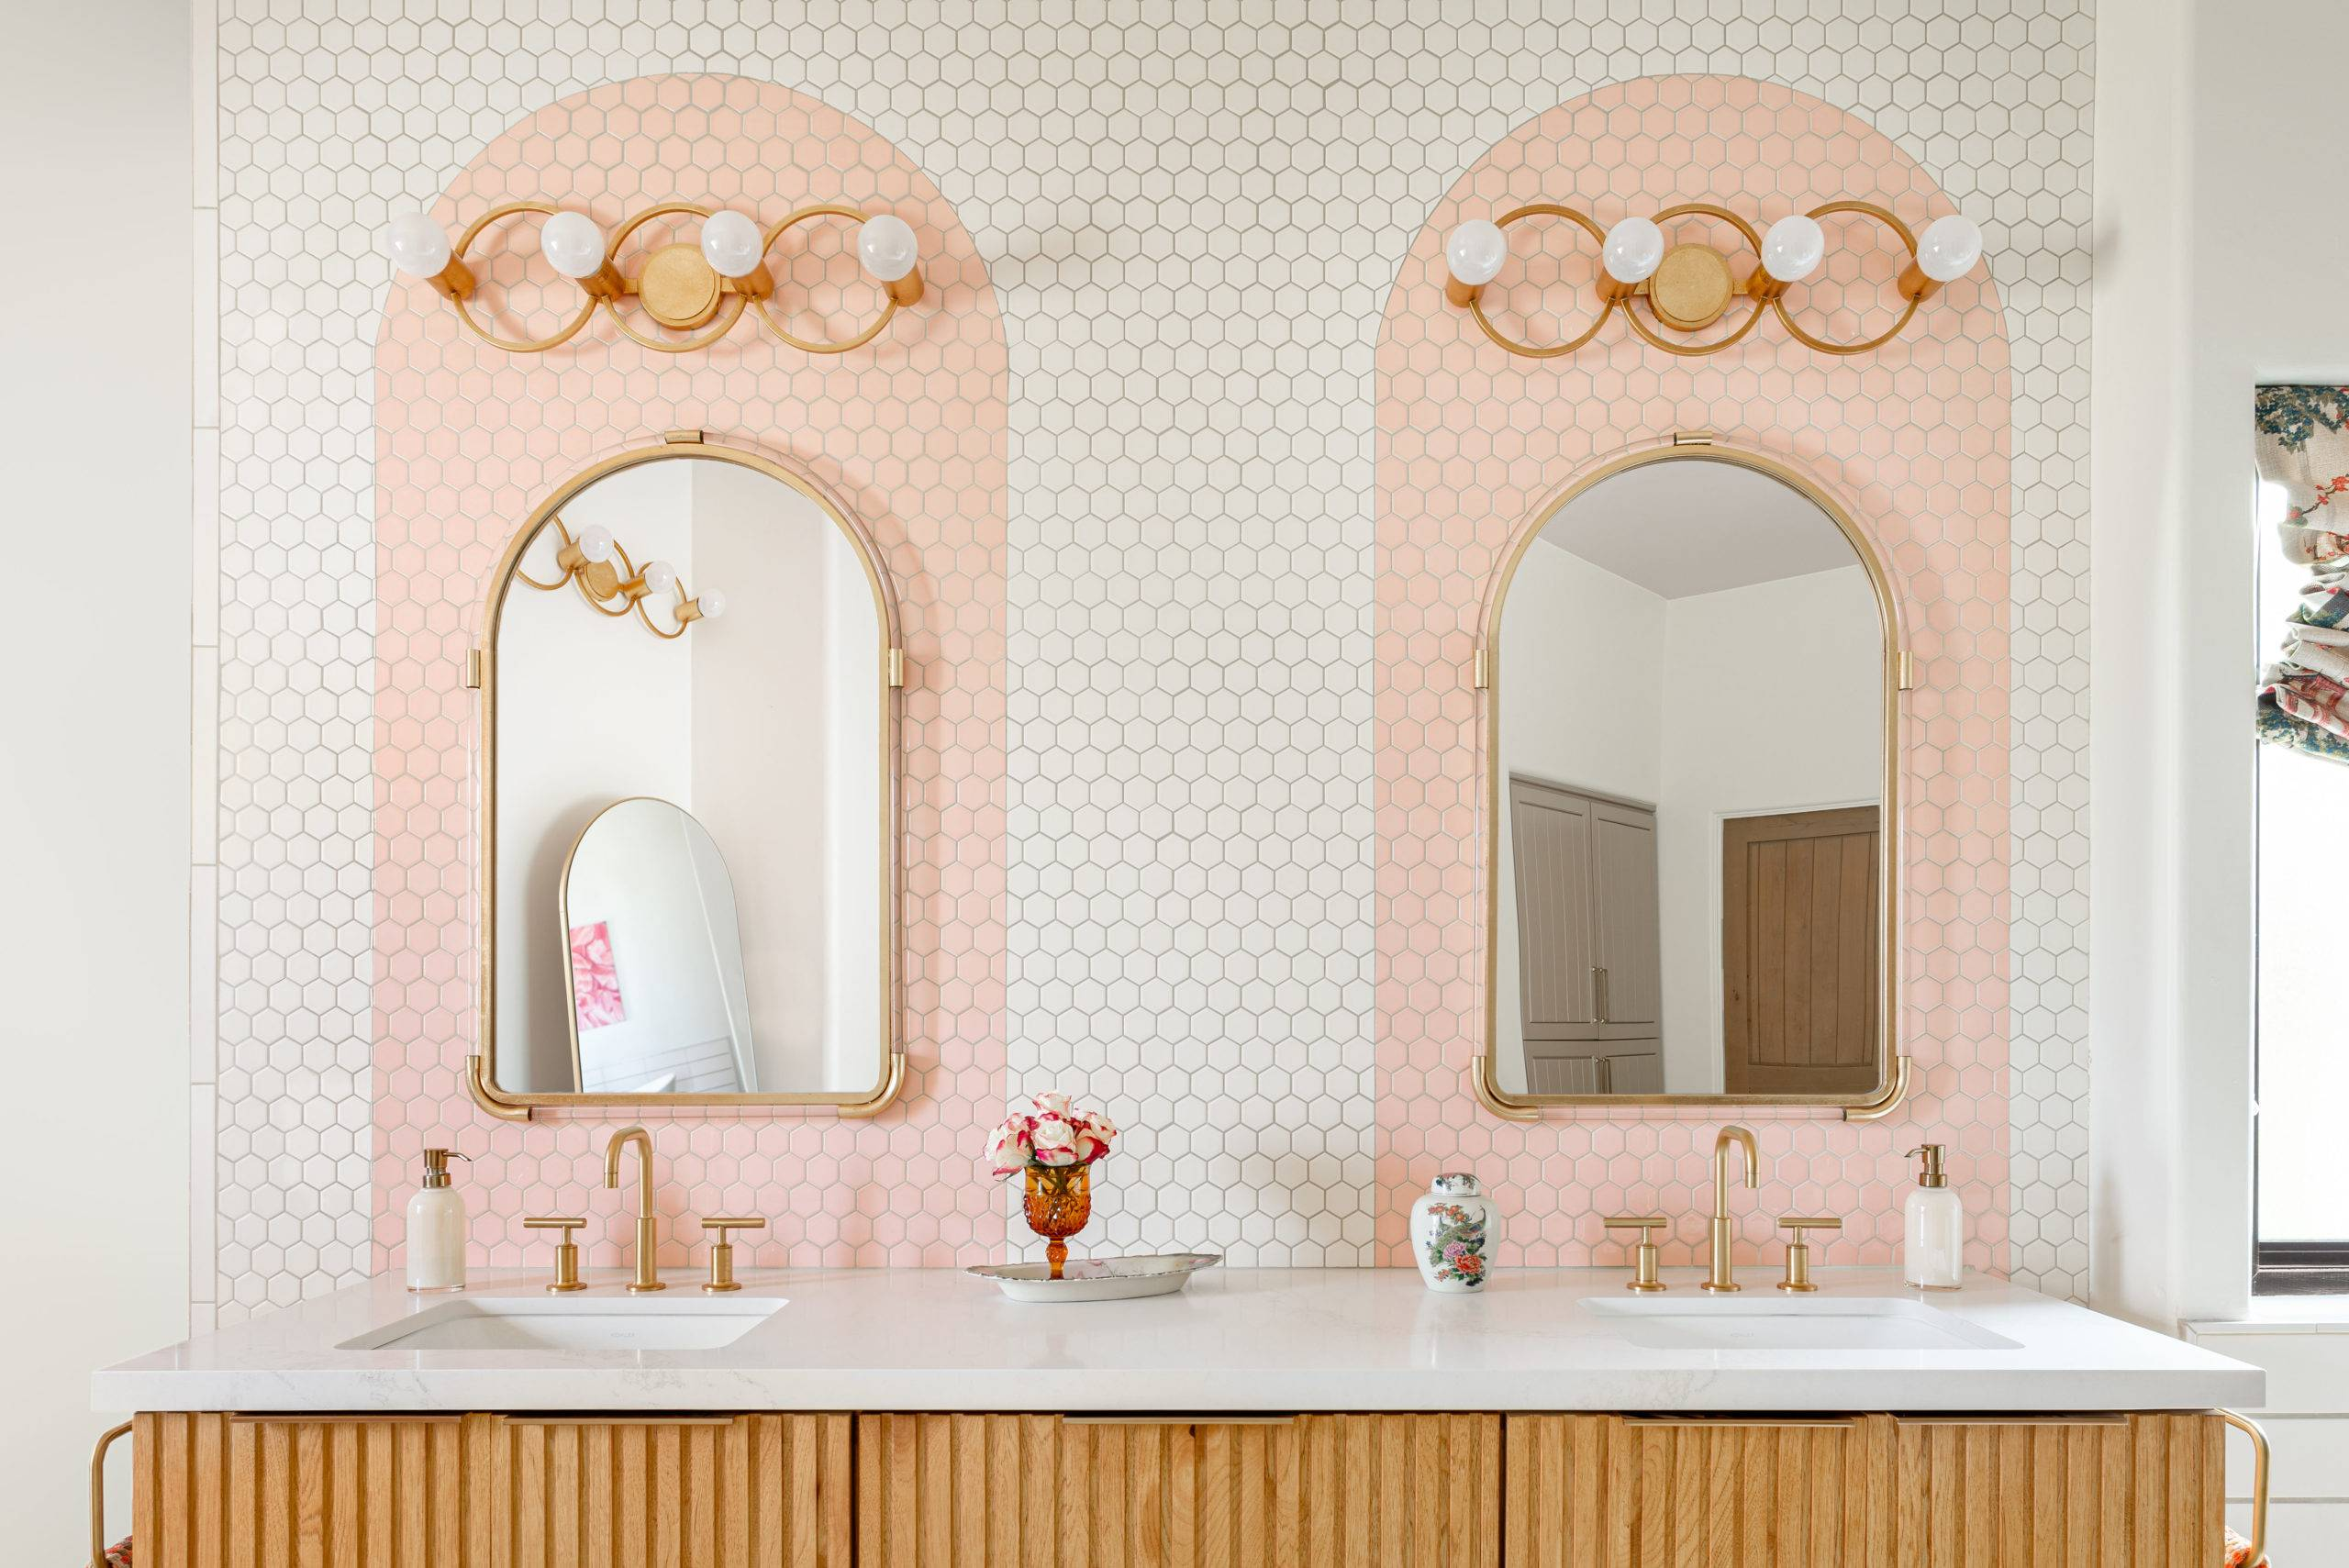 white and pink bathroom tiled backsplash with arches